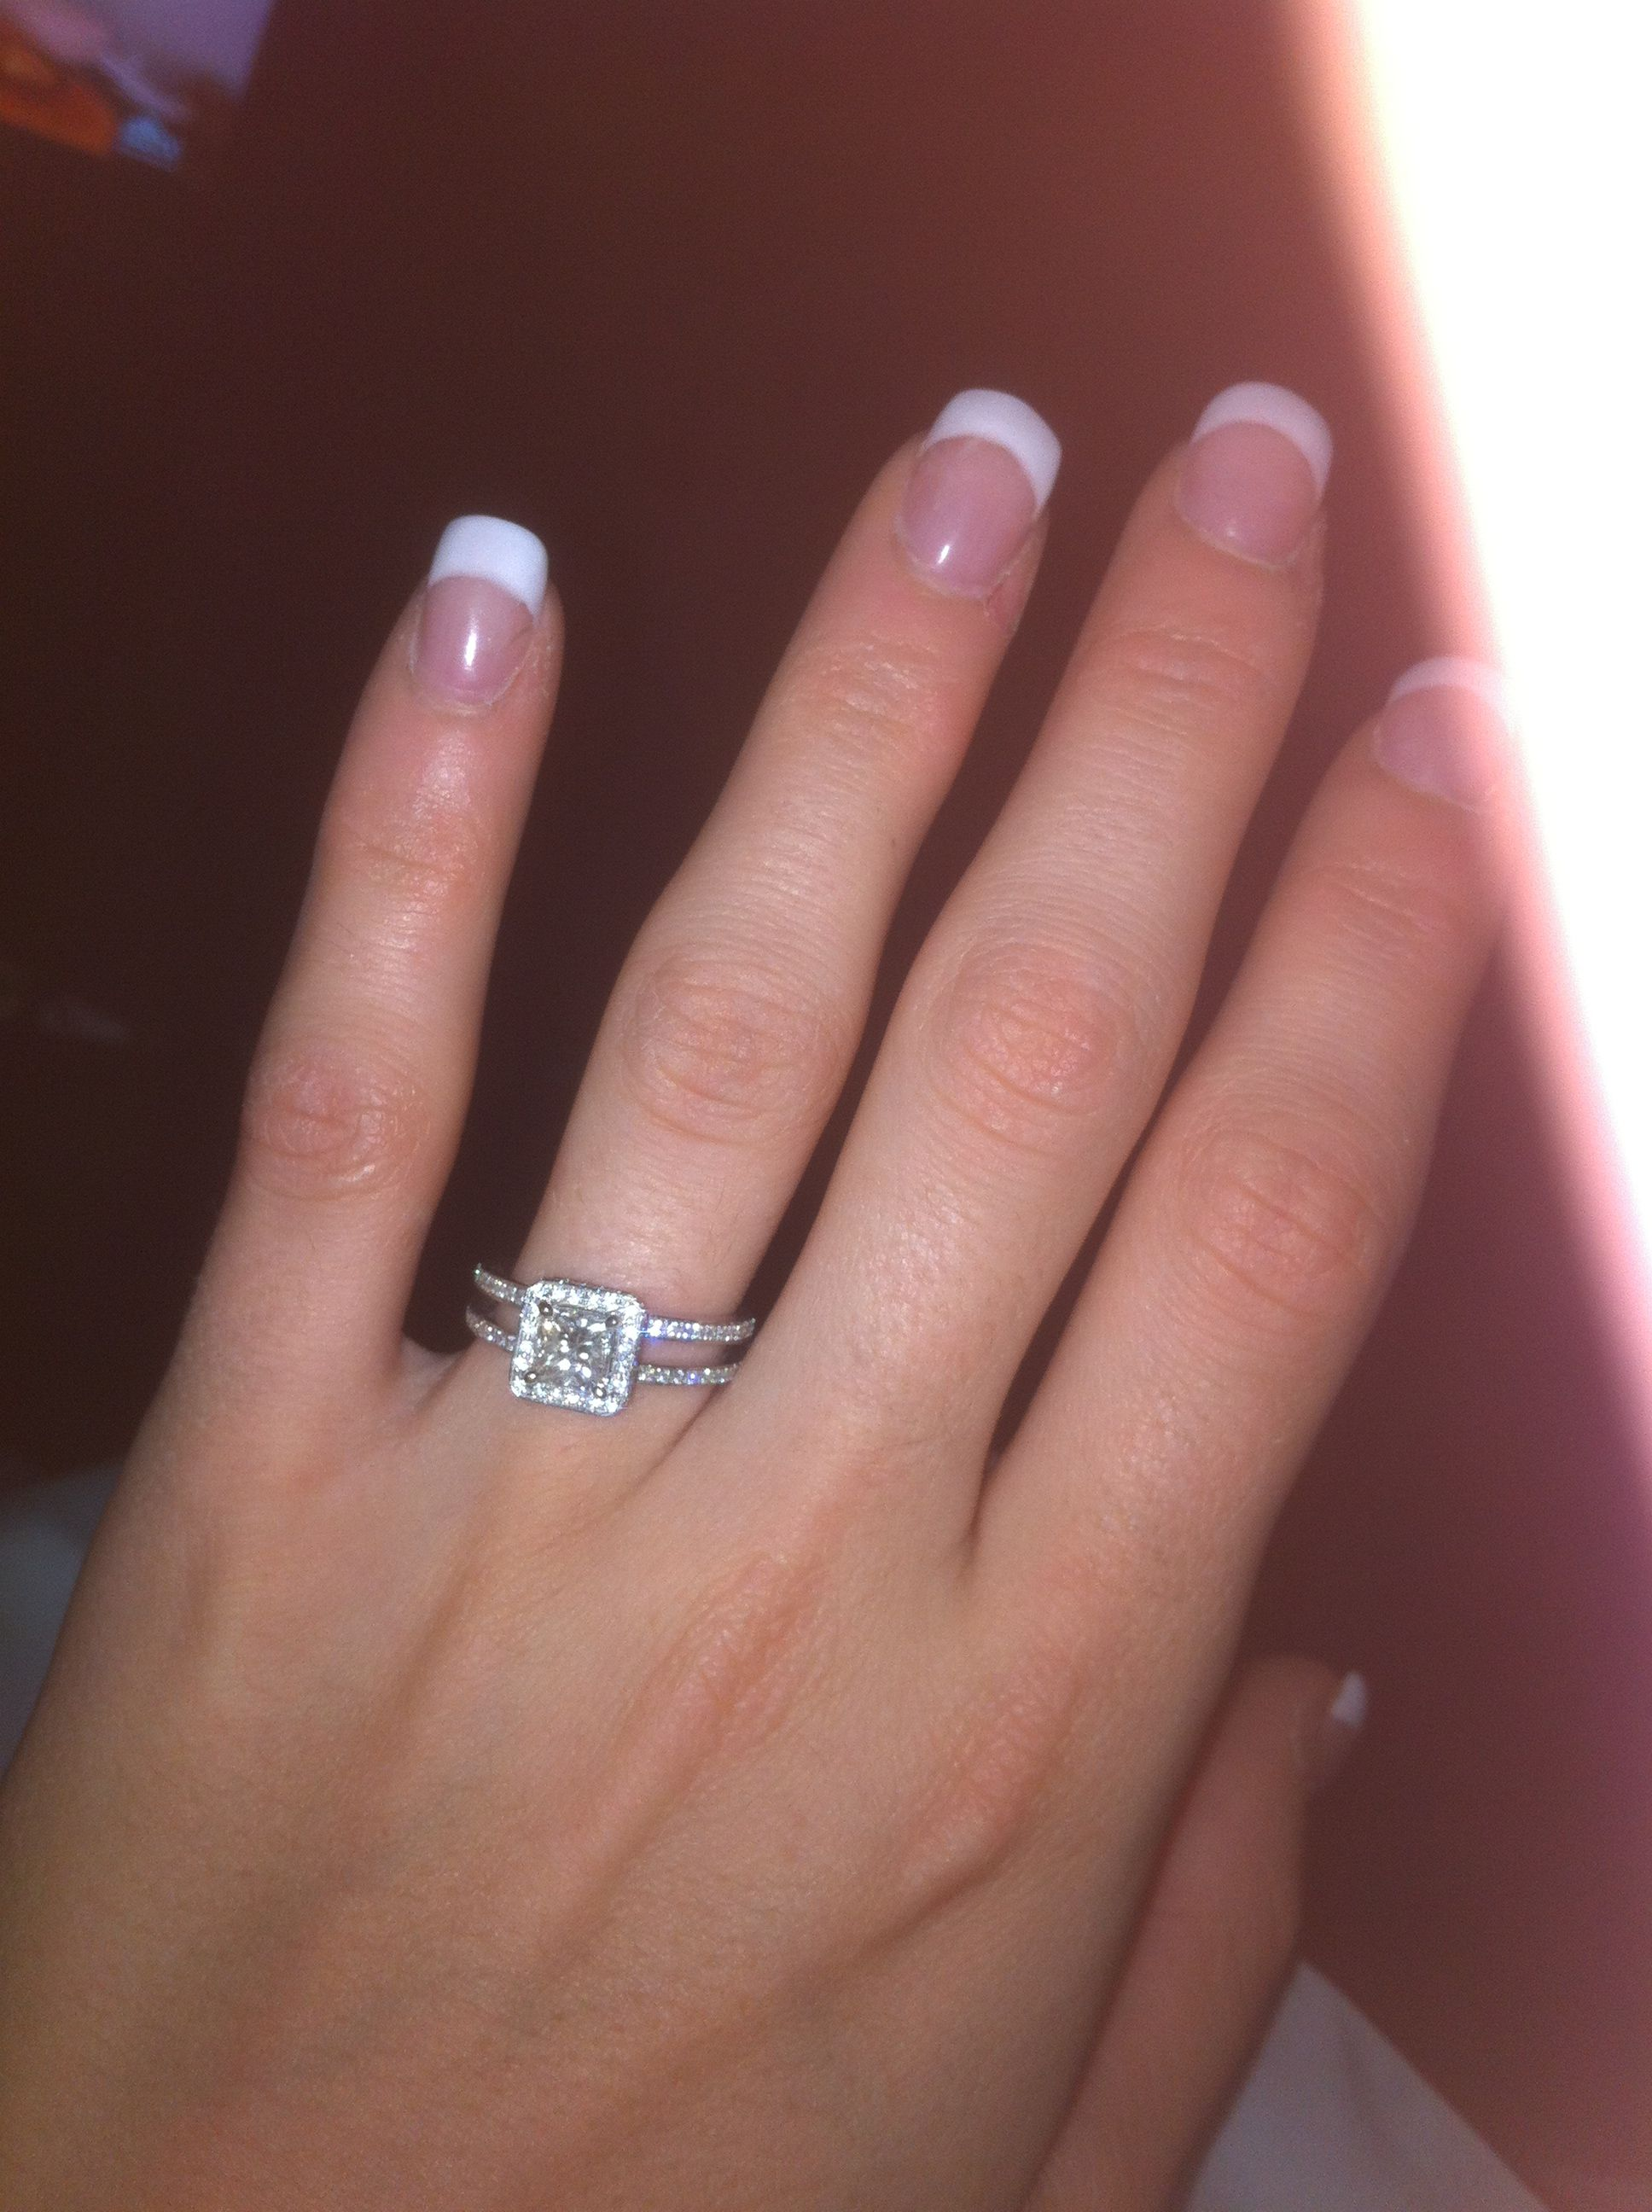 I love love love my Halo Double band engagement ring!!!!! My fiancé ...